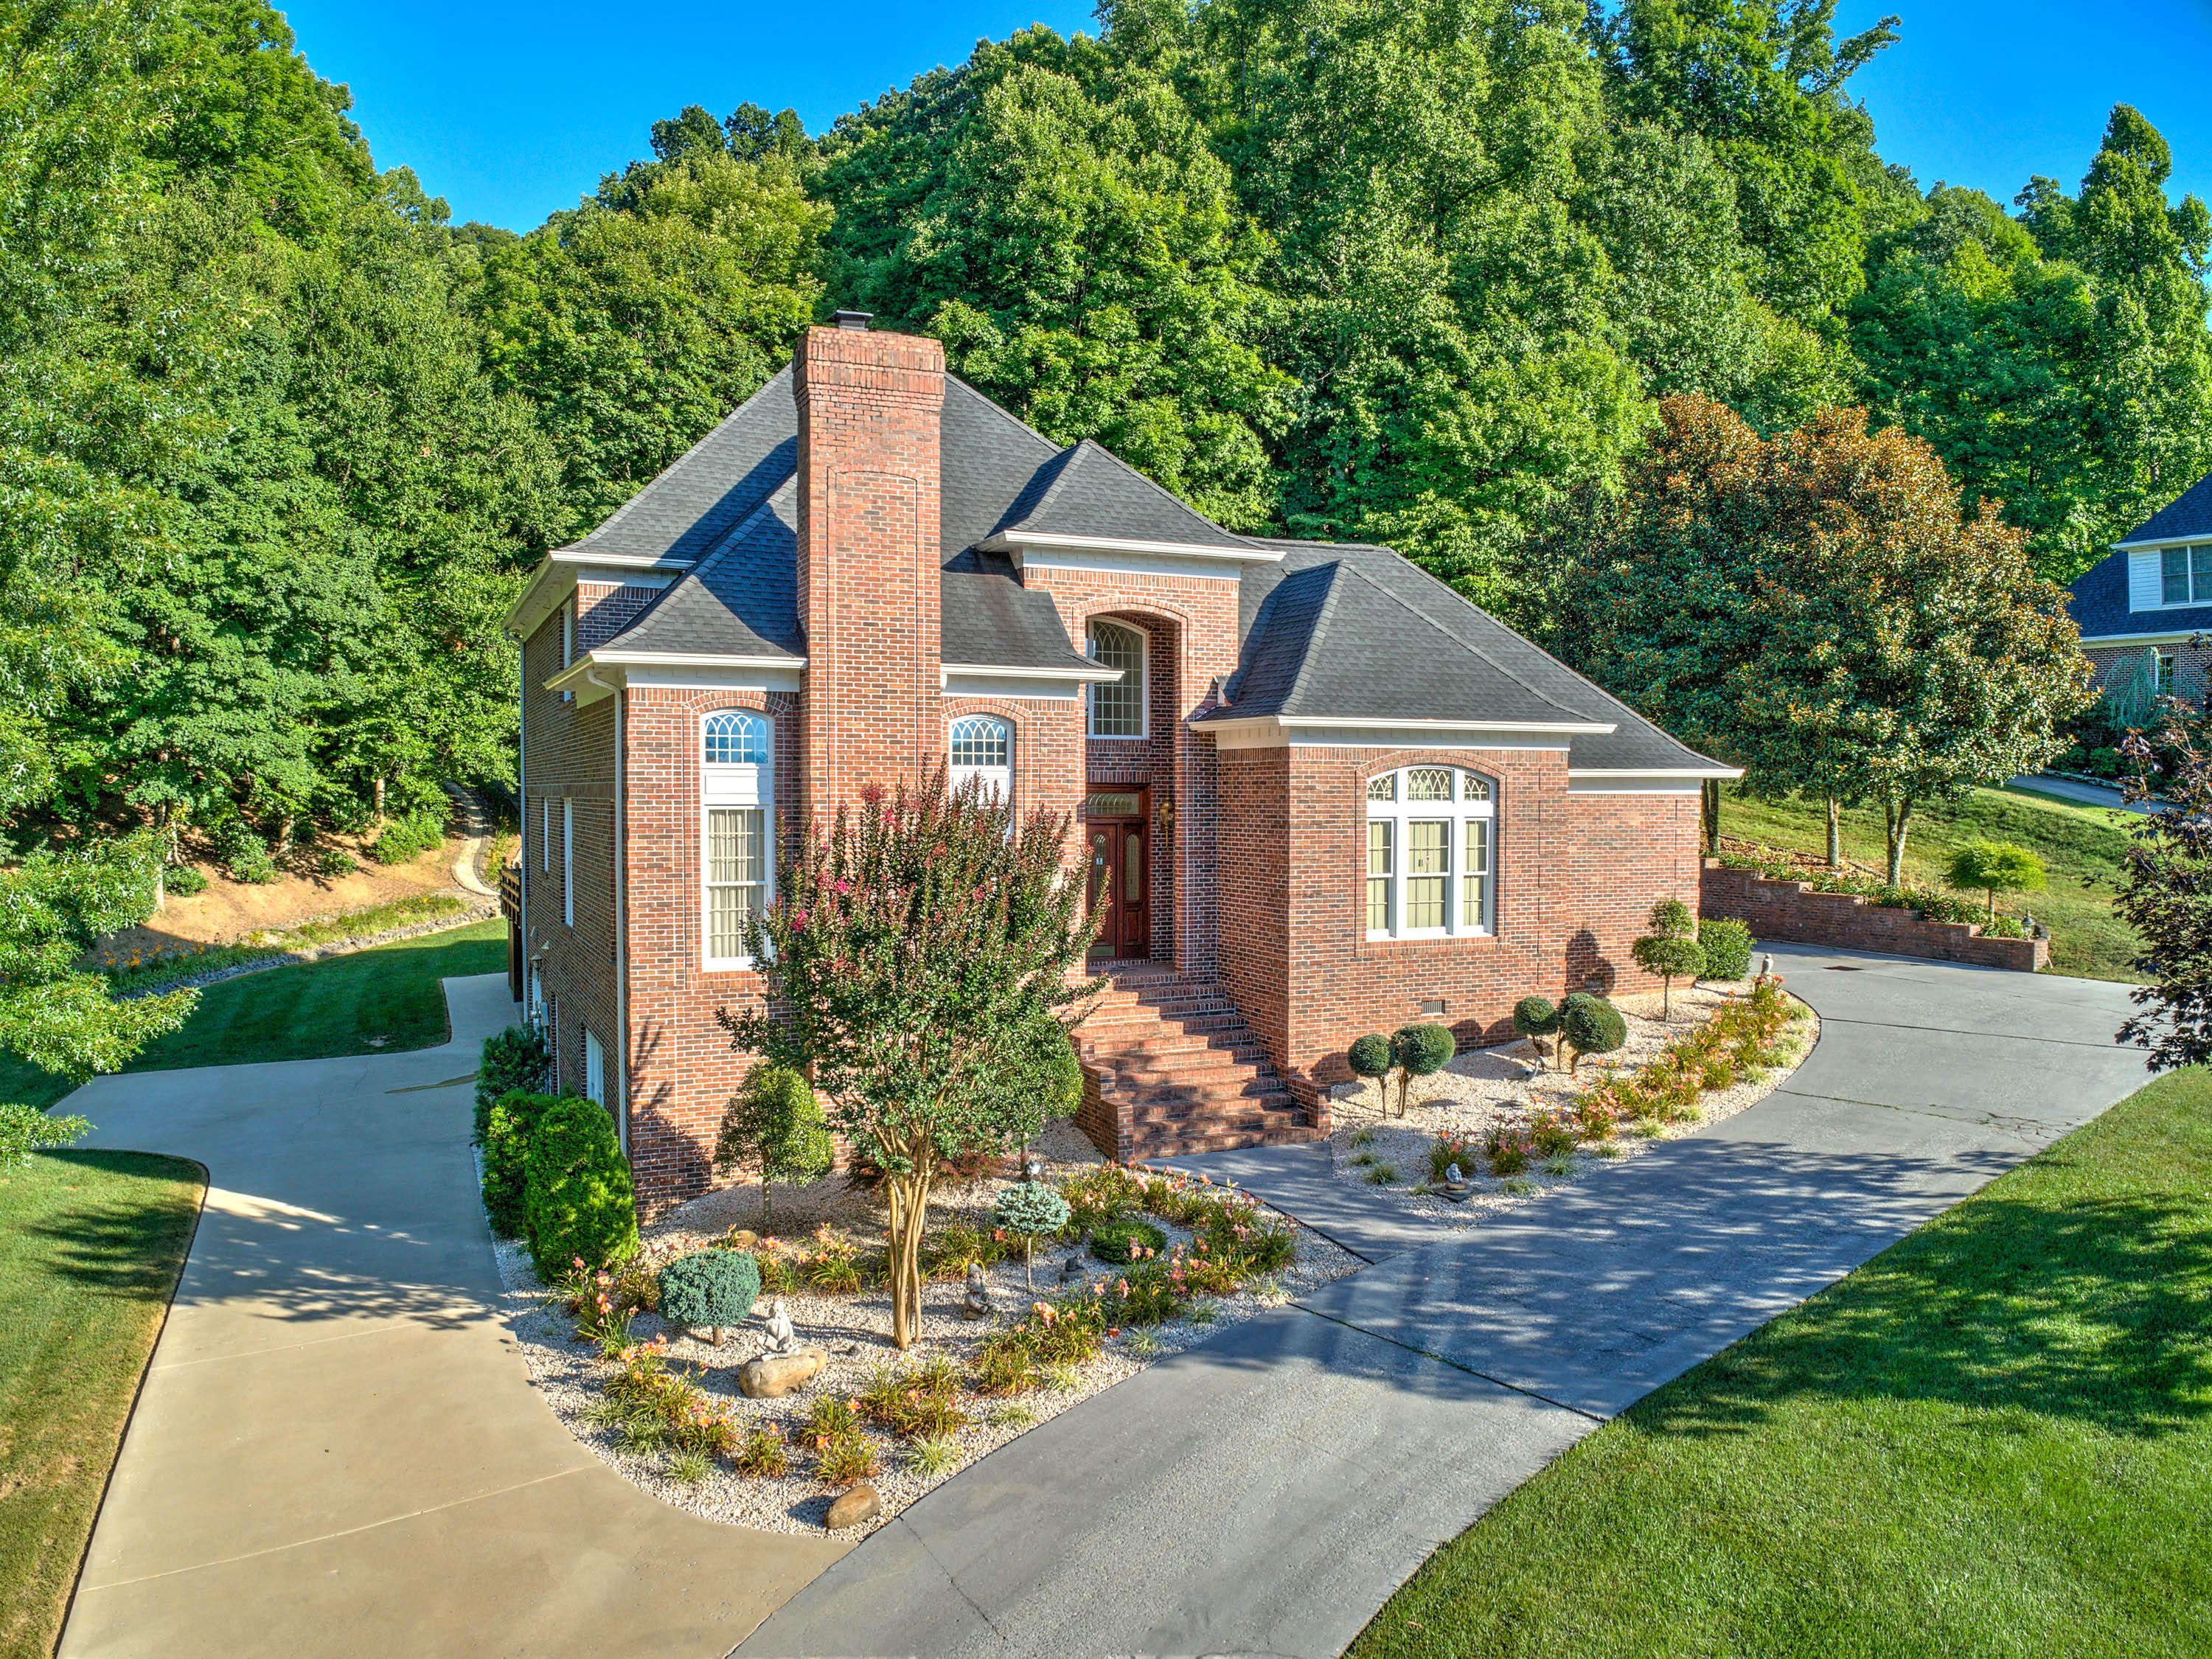 215 Shadowood Drive, Johnson City, Tennessee 37604, 4 Bedrooms Bedrooms, ,4 BathroomsBathrooms,Single Family,For Sale,215 Shadowood Drive,2,9920372